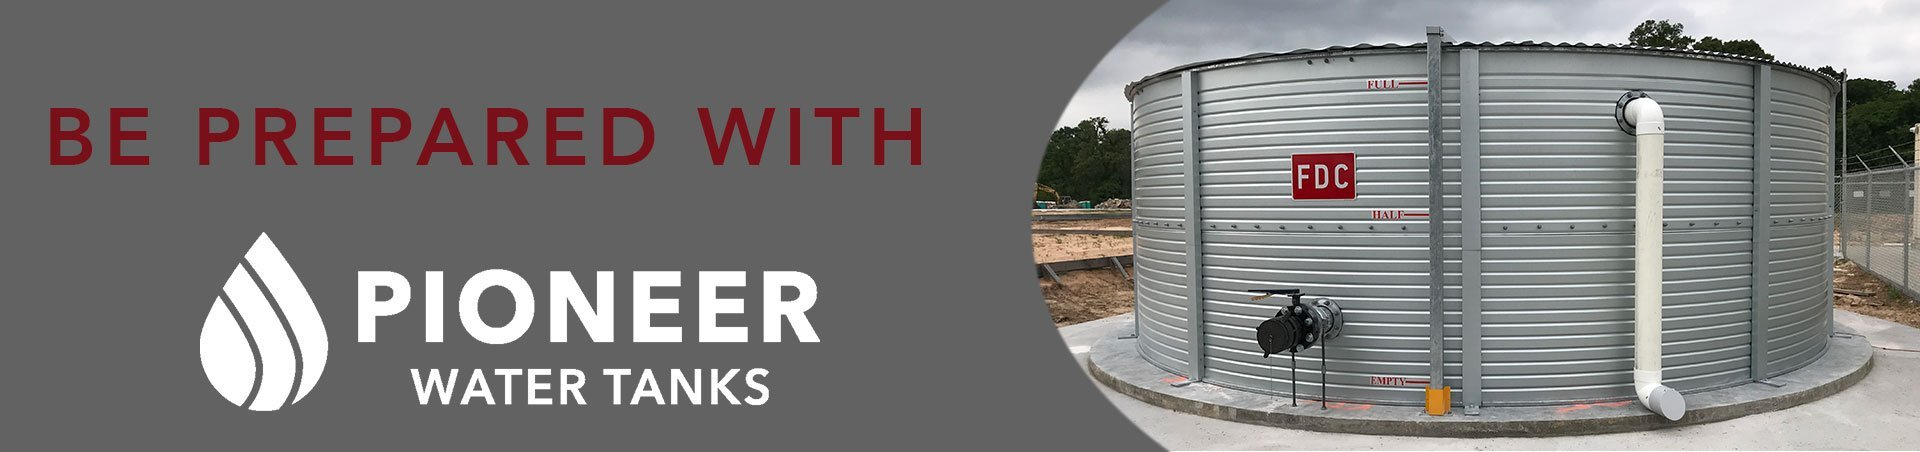 Be Prepared with Pioneer Water Tanks